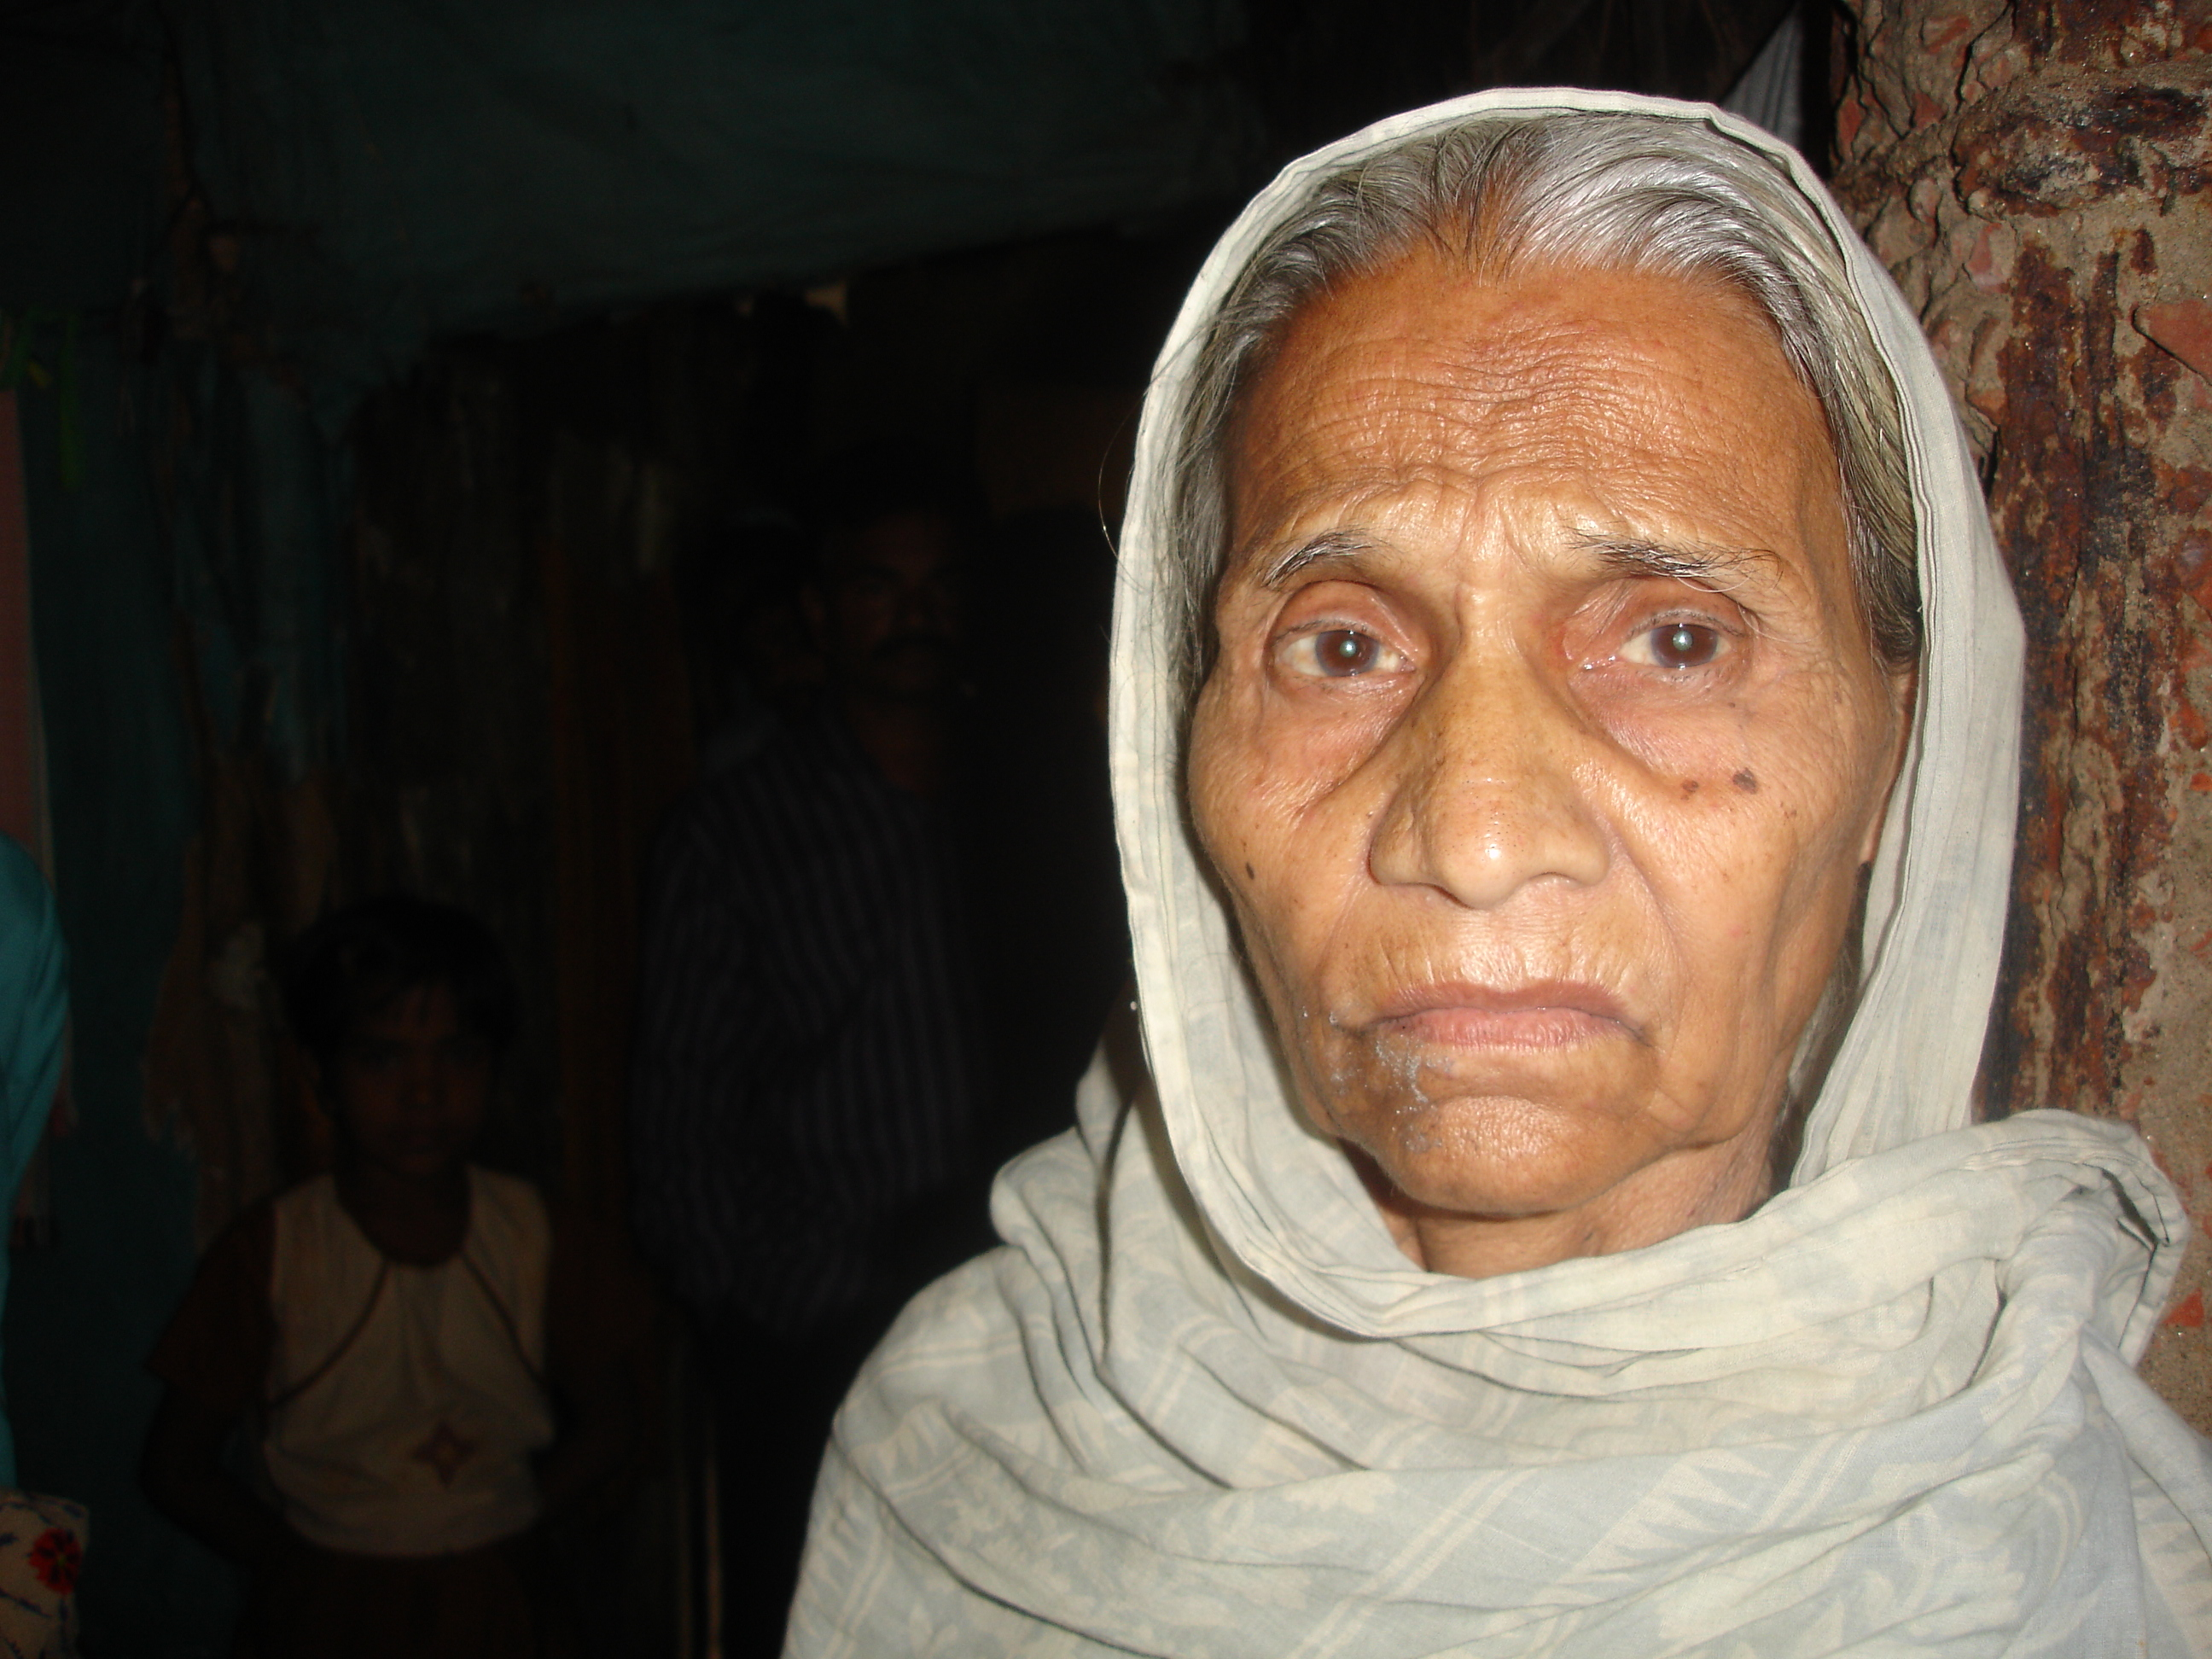 85-year-old Hasina, a Bihari in Dhaka. Her family emigrated from Calcutta to then East Pakistan after partition